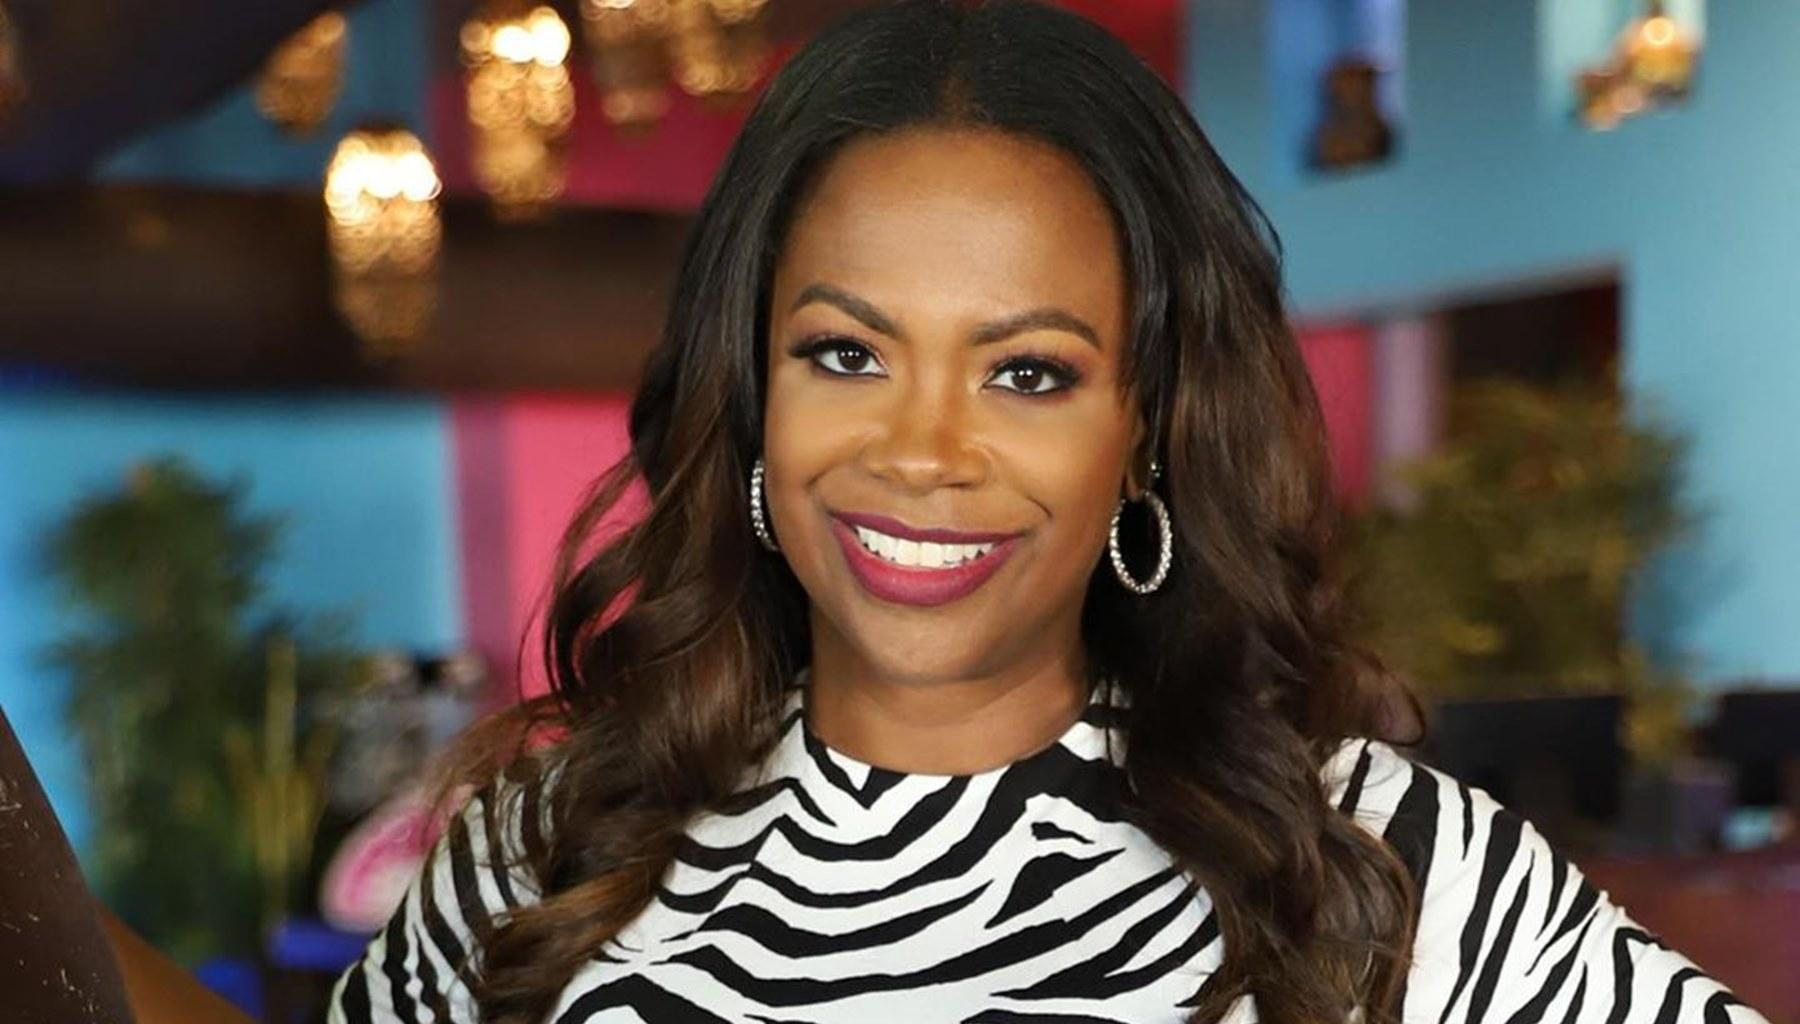 Kandi Burruss And Kenya Moore Have Decided To Bare It All In New Photos In Challenge Along With NeNe Leakes